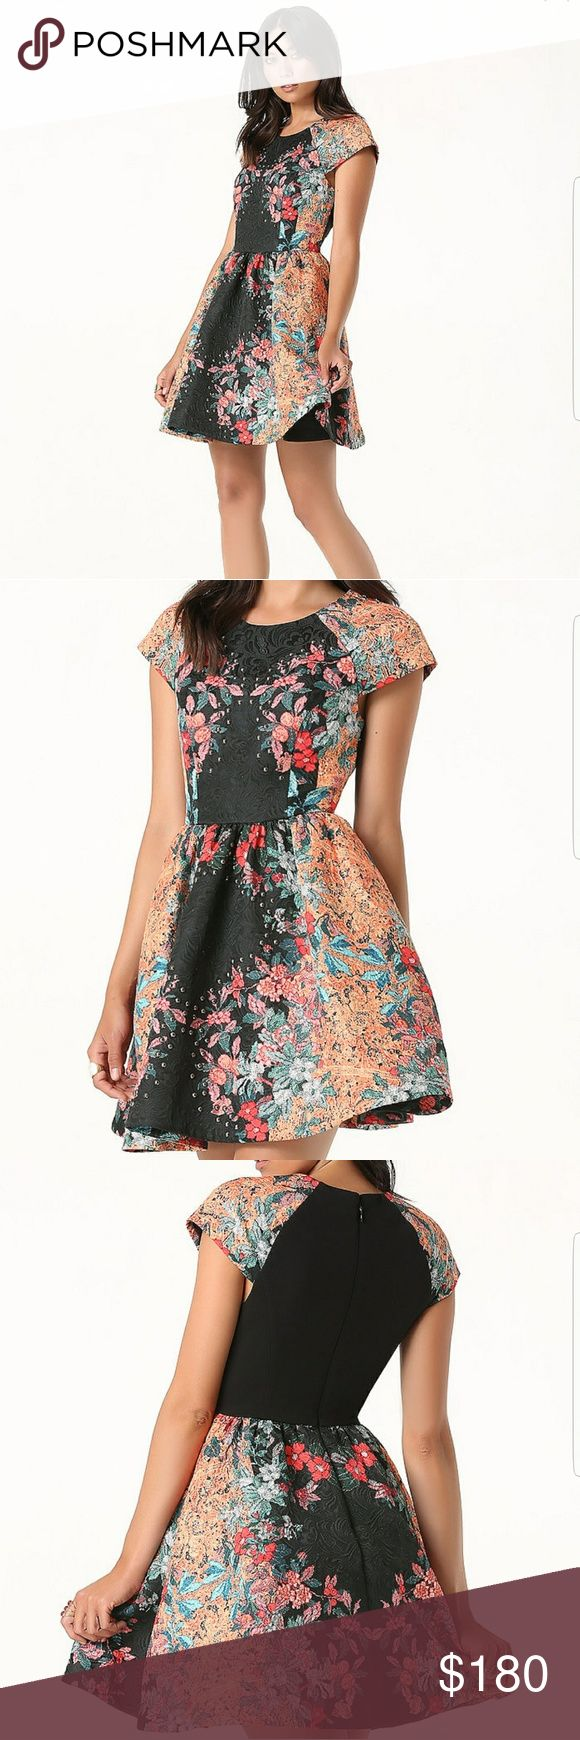 Bebe Print Fit & Flare Dress Magical fit-and-flare dress in sumptuous jacquard detailed by a richly hued placed print. Gathered skirt with full undernetting adds fabulous volume. Hidden back hook-and-eye and zip closure. Fully lined.  55% Polyester, 45% cotton  Worn only ones bebe Dresses Mini